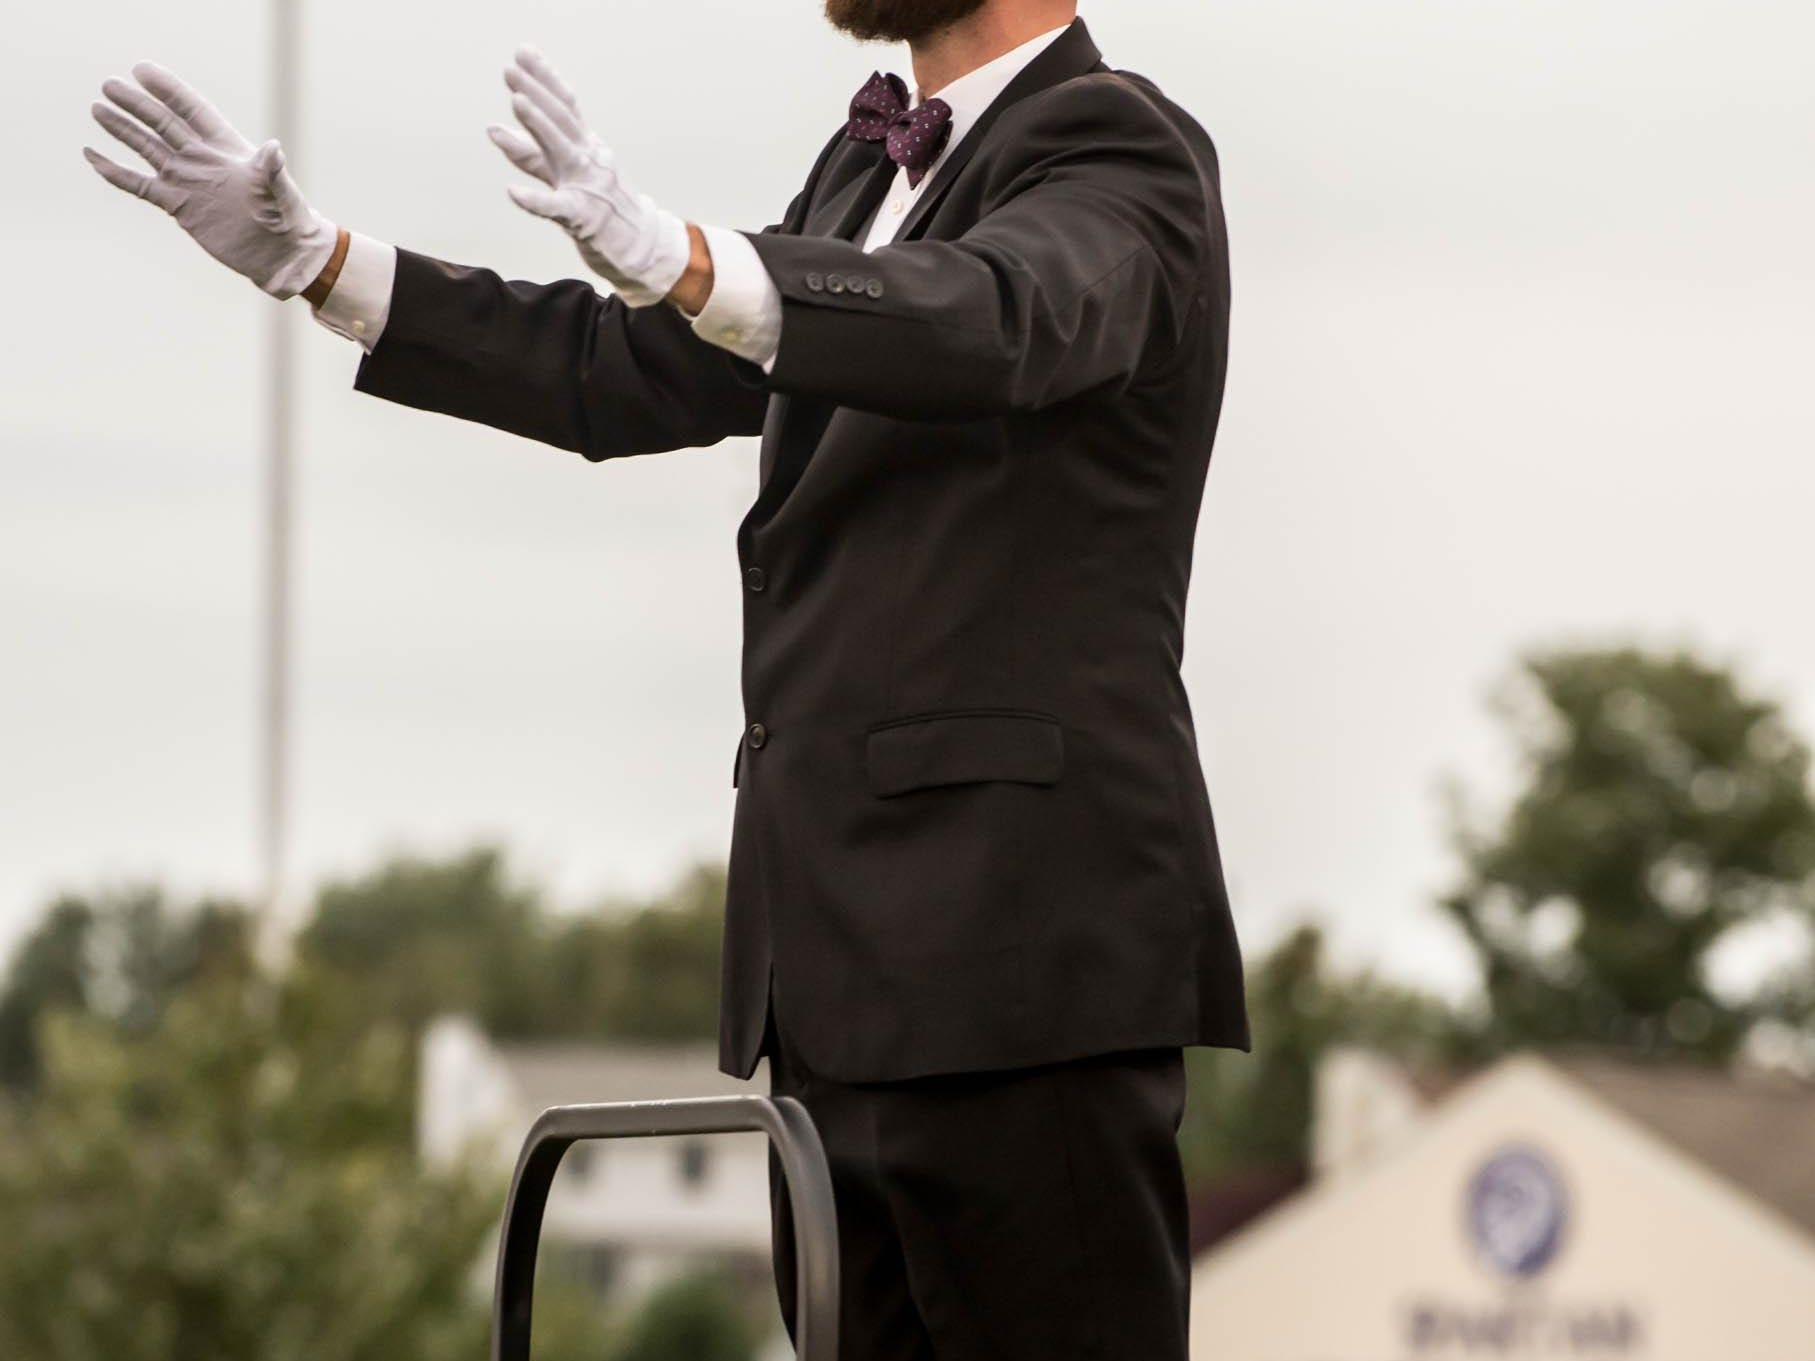 Lakeview's band director during Friday evenings home comming events.